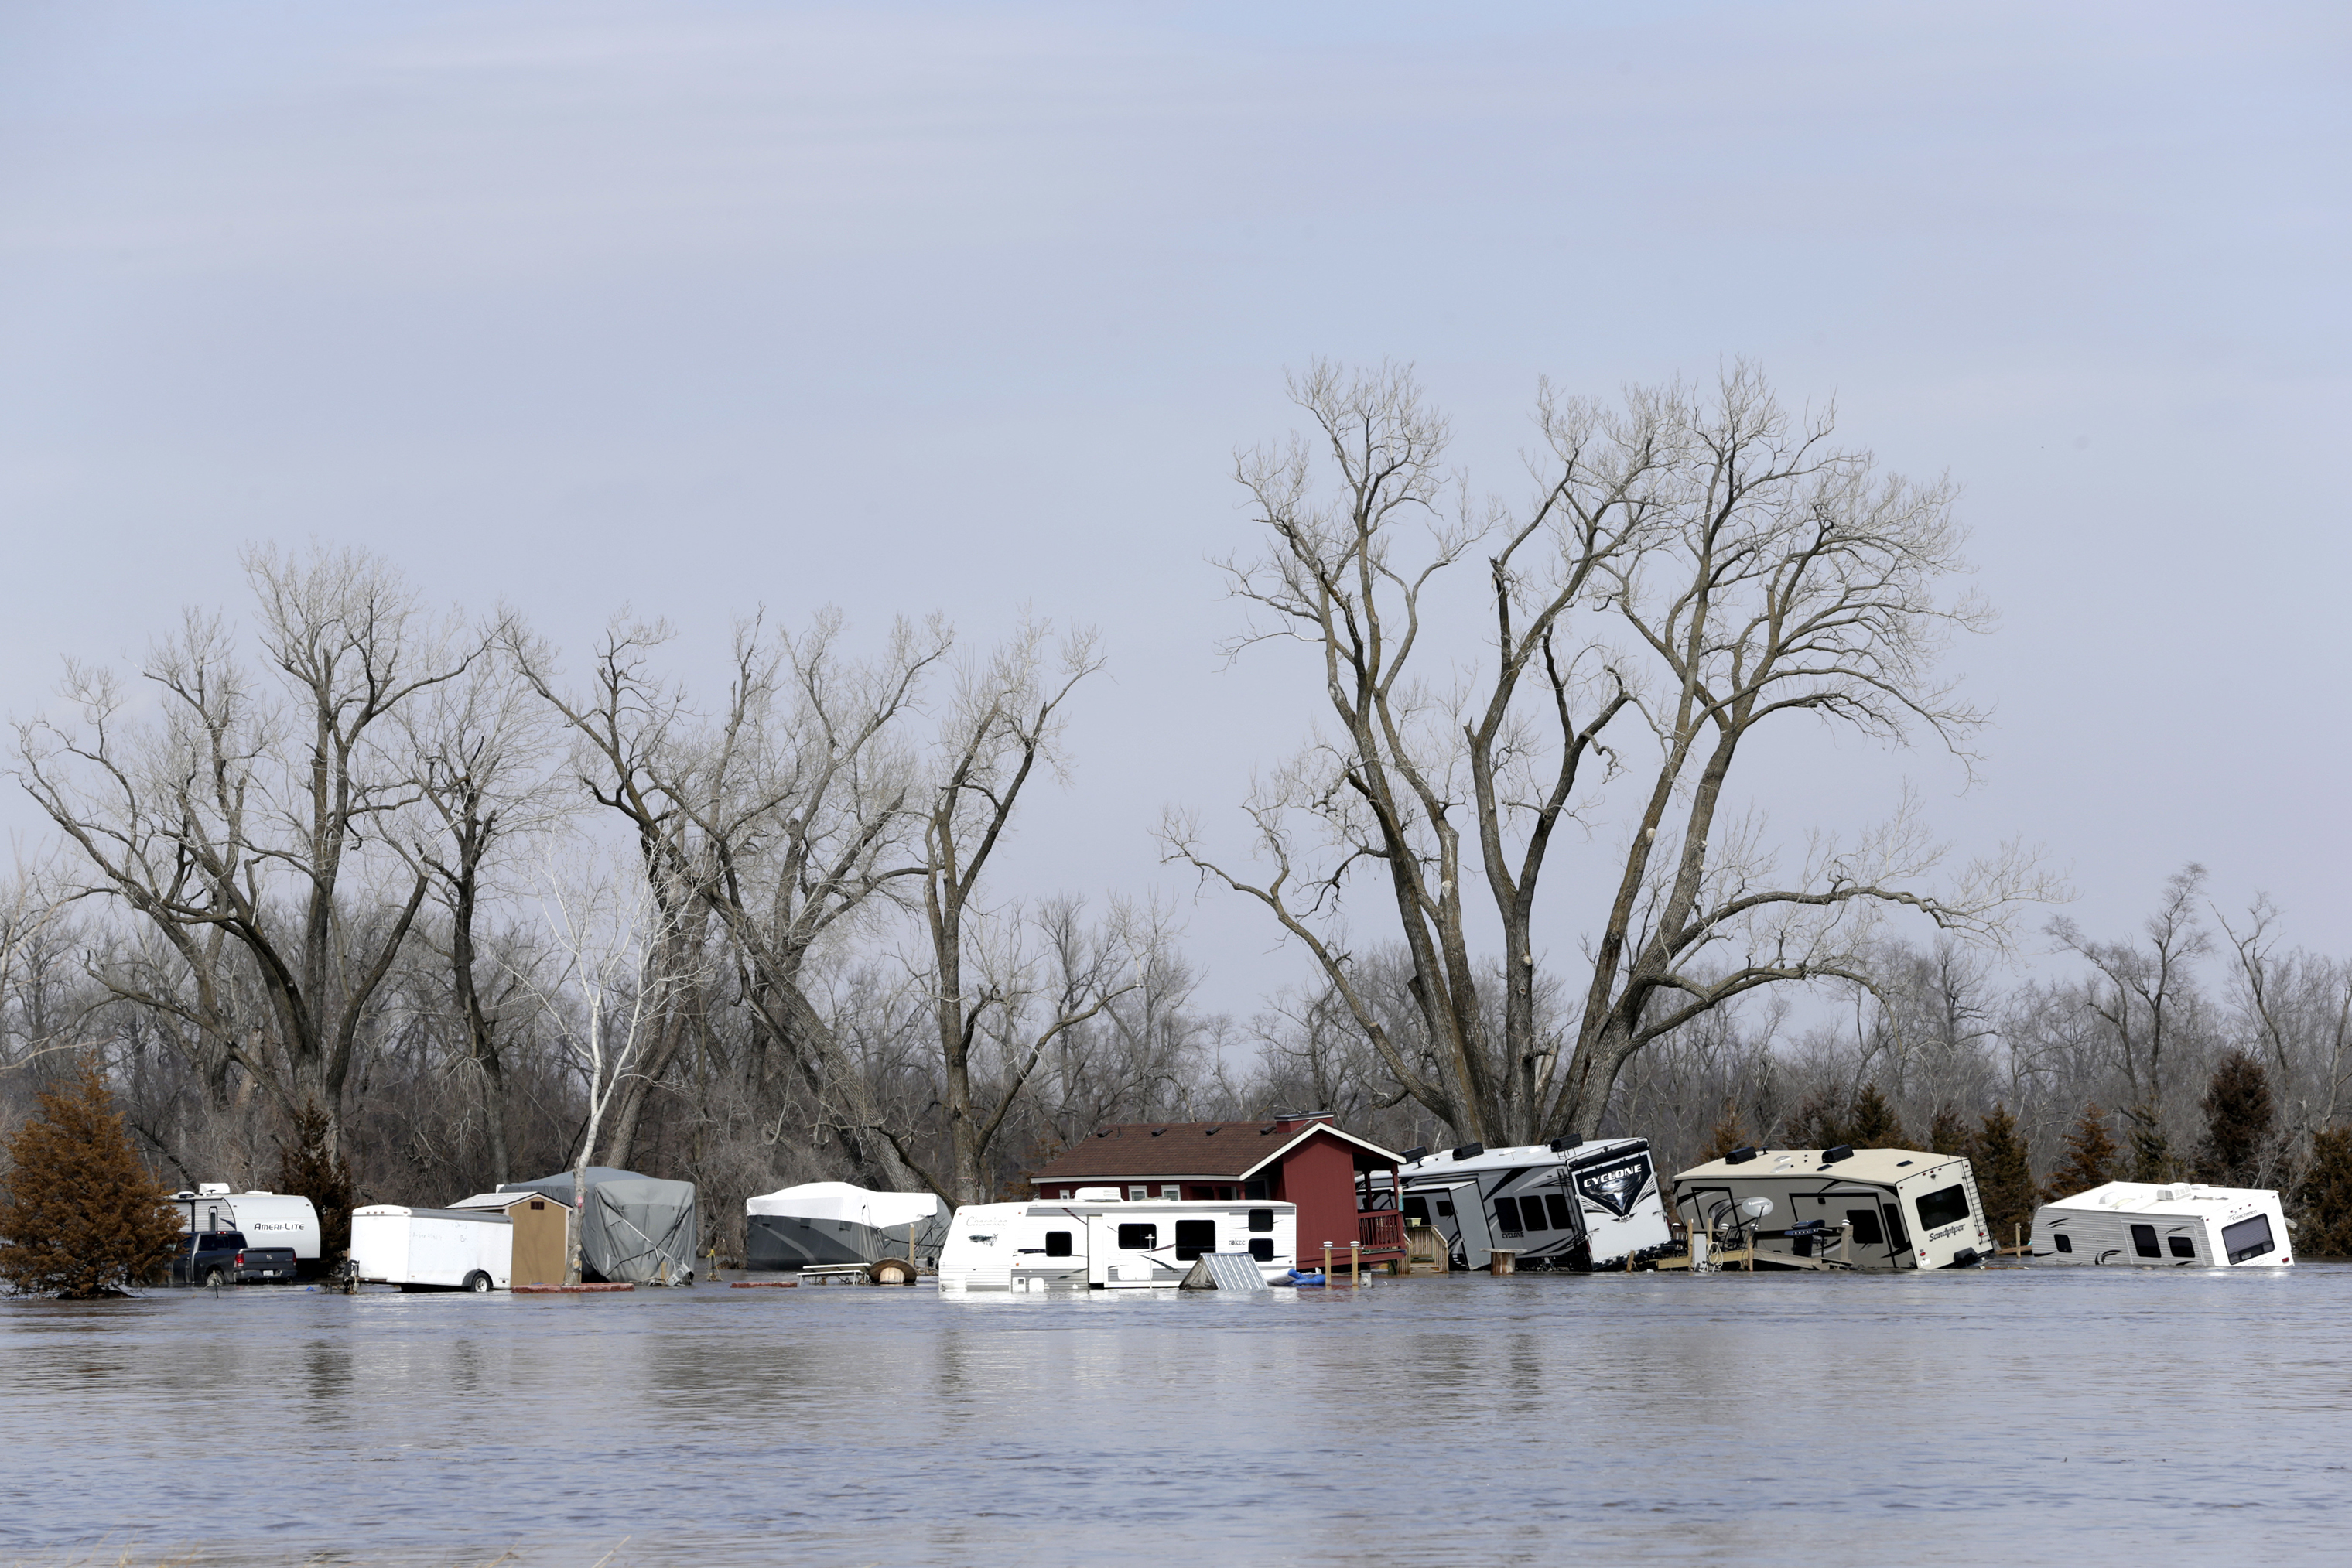 RVs, washed away by the flood waters of the Platte River, are seen in Merritt's RV Park in Plattsmouth, Nebraska, March 17, 2019.